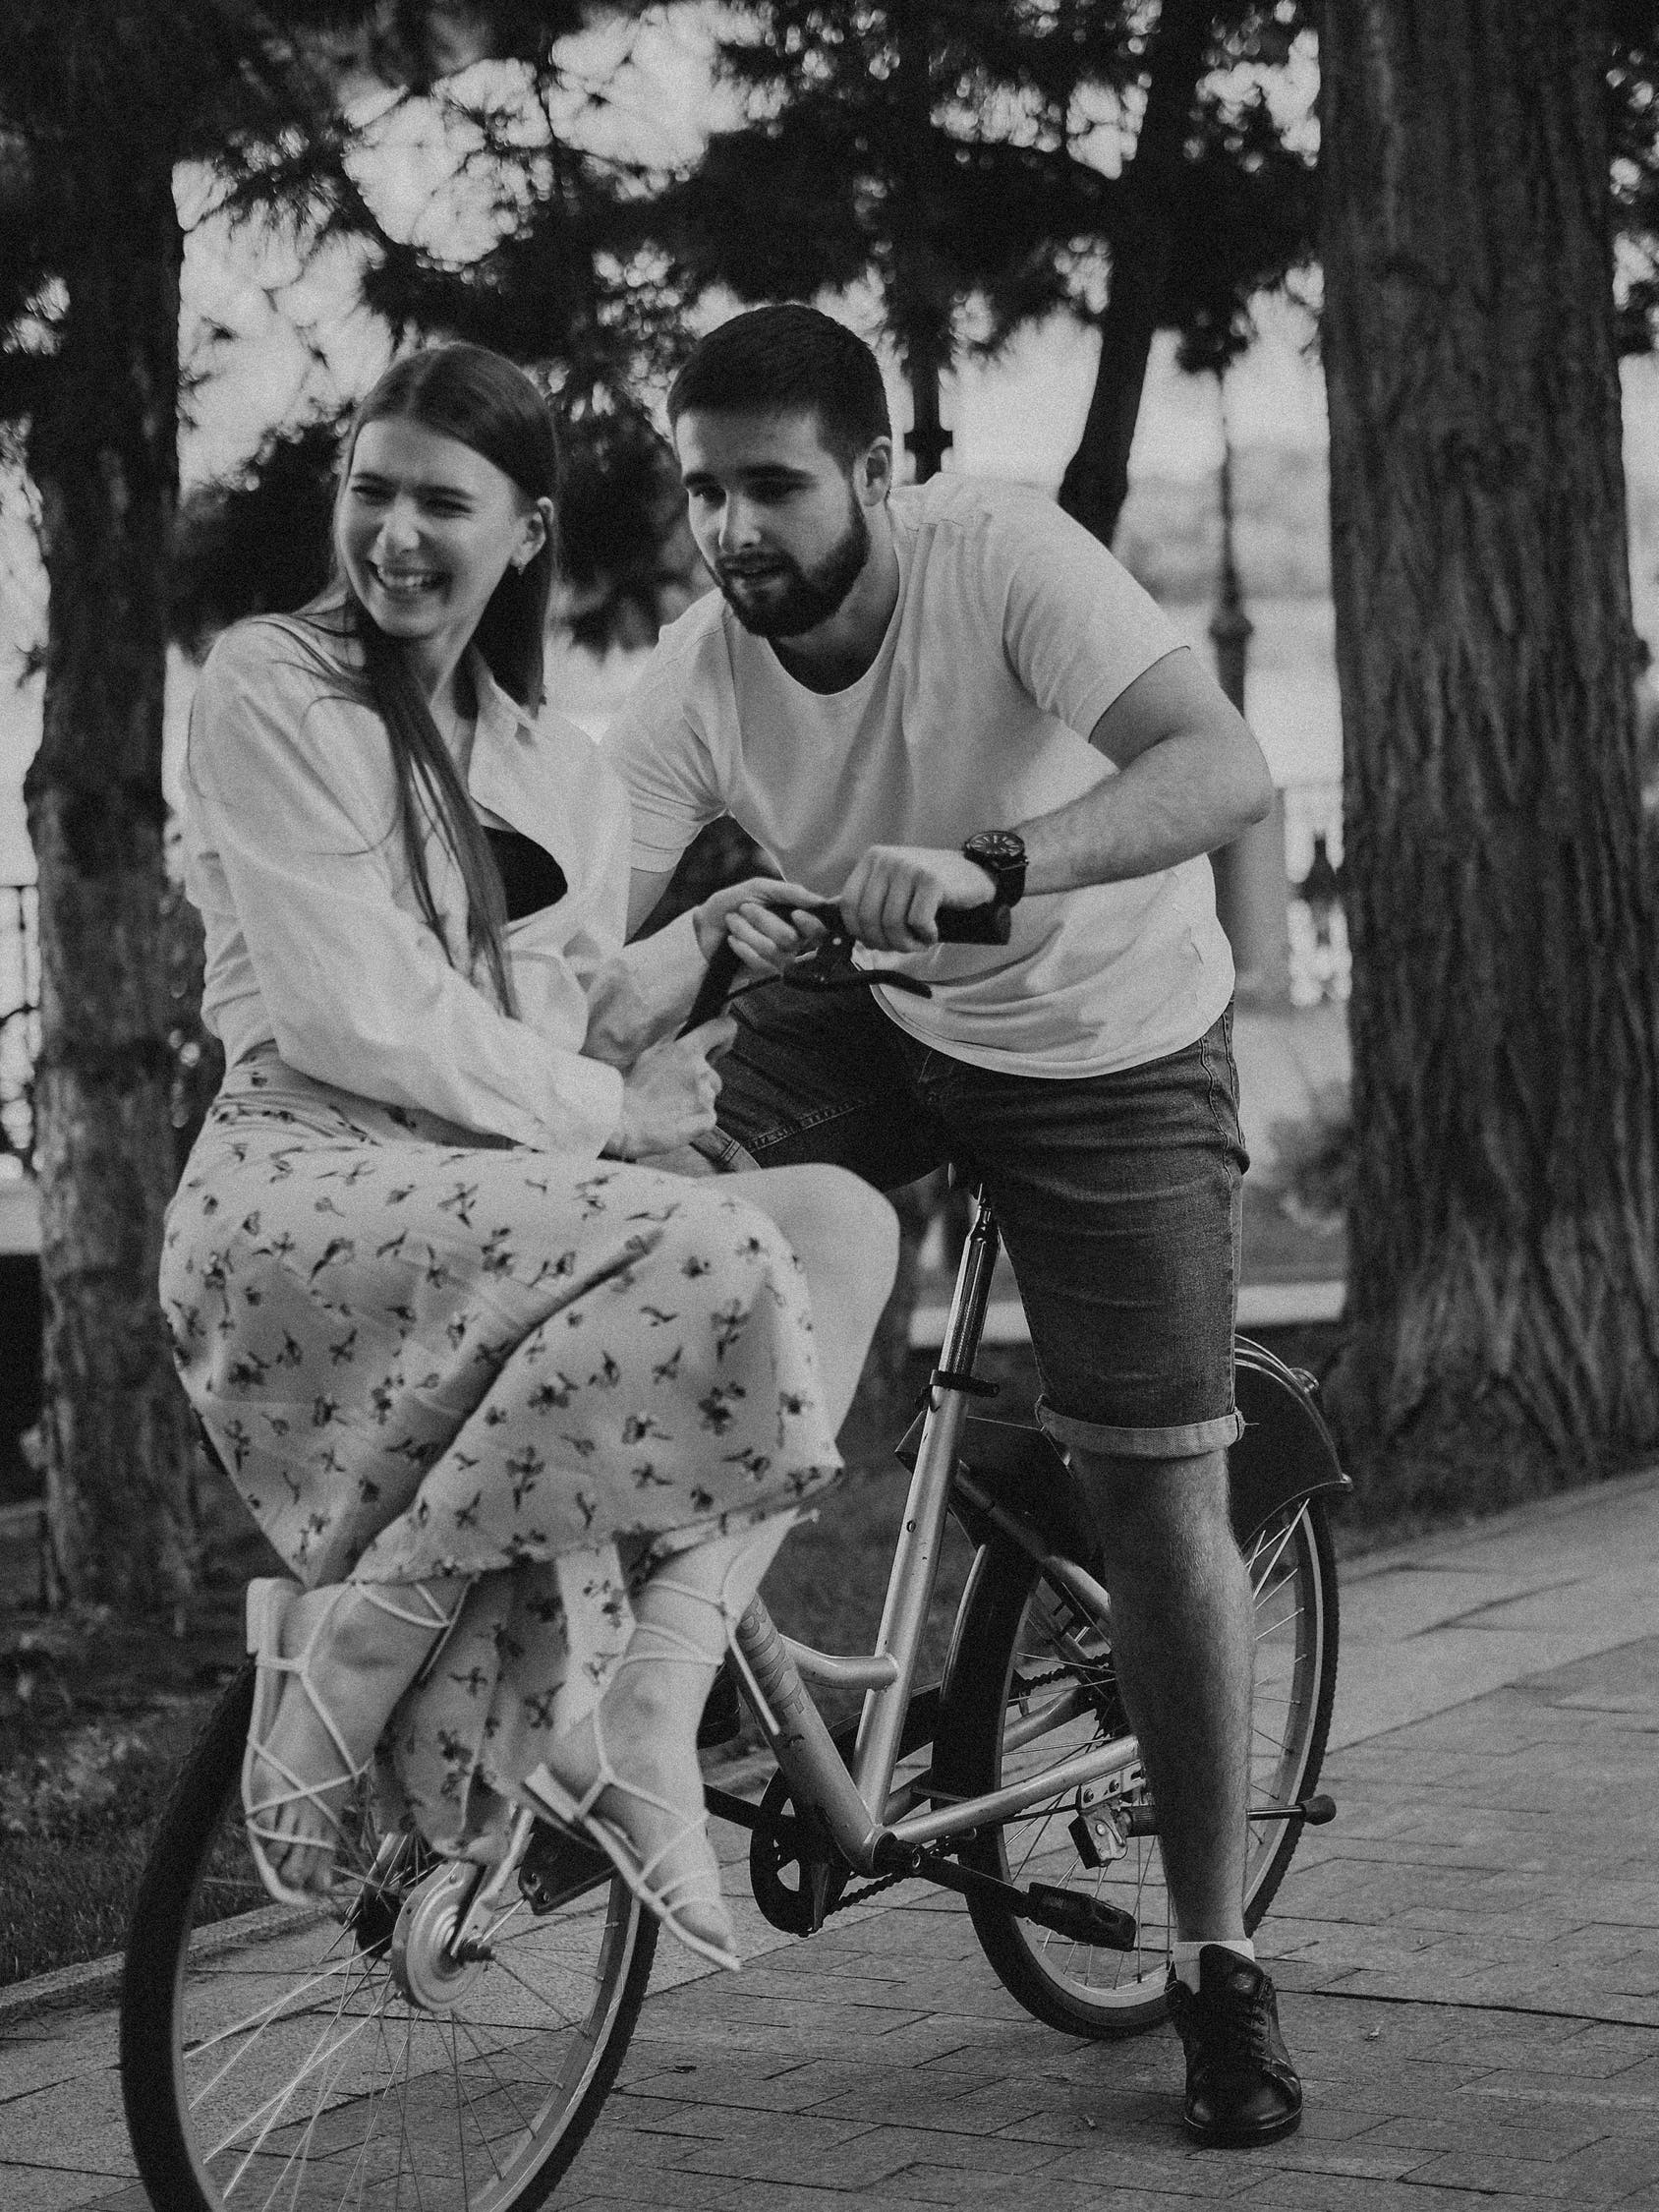 Man and Woman Riding on Bicycle in Grayscale Photography